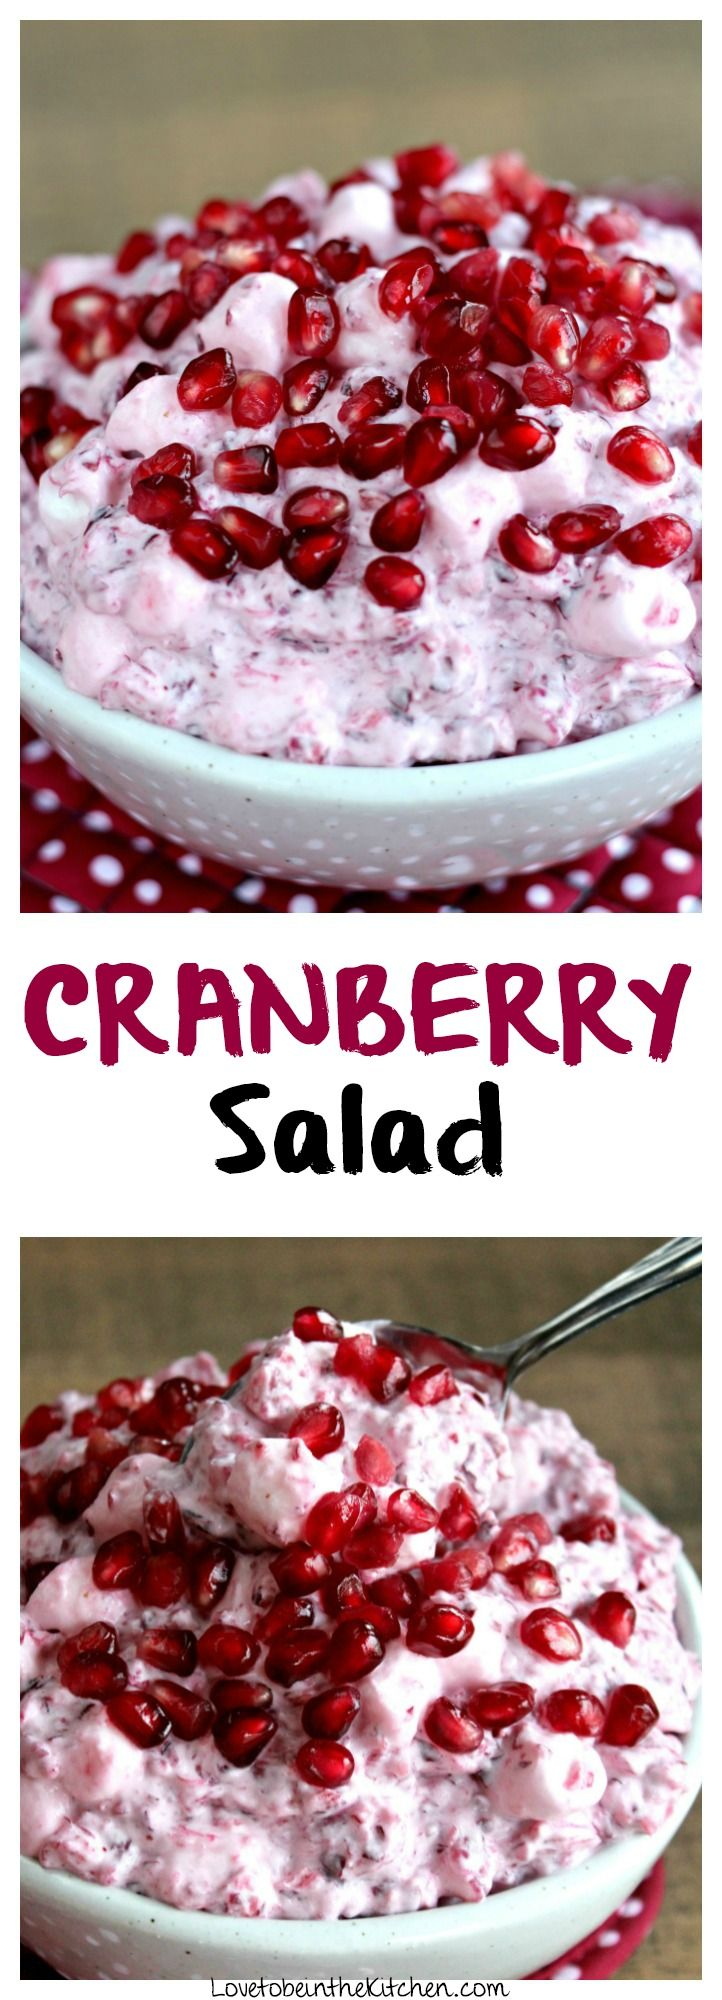 The best Cranberry Salad! Always a hit at holiday parties! A sweet, tart and creamy side dish. Made with fresh cranberries mixed with crushed pineapple and mini marshmallows with freshly whipped cream mixed in. Pomegranate seeds are garnished on top giving it a little crunch and juiciness. It's heavenly!